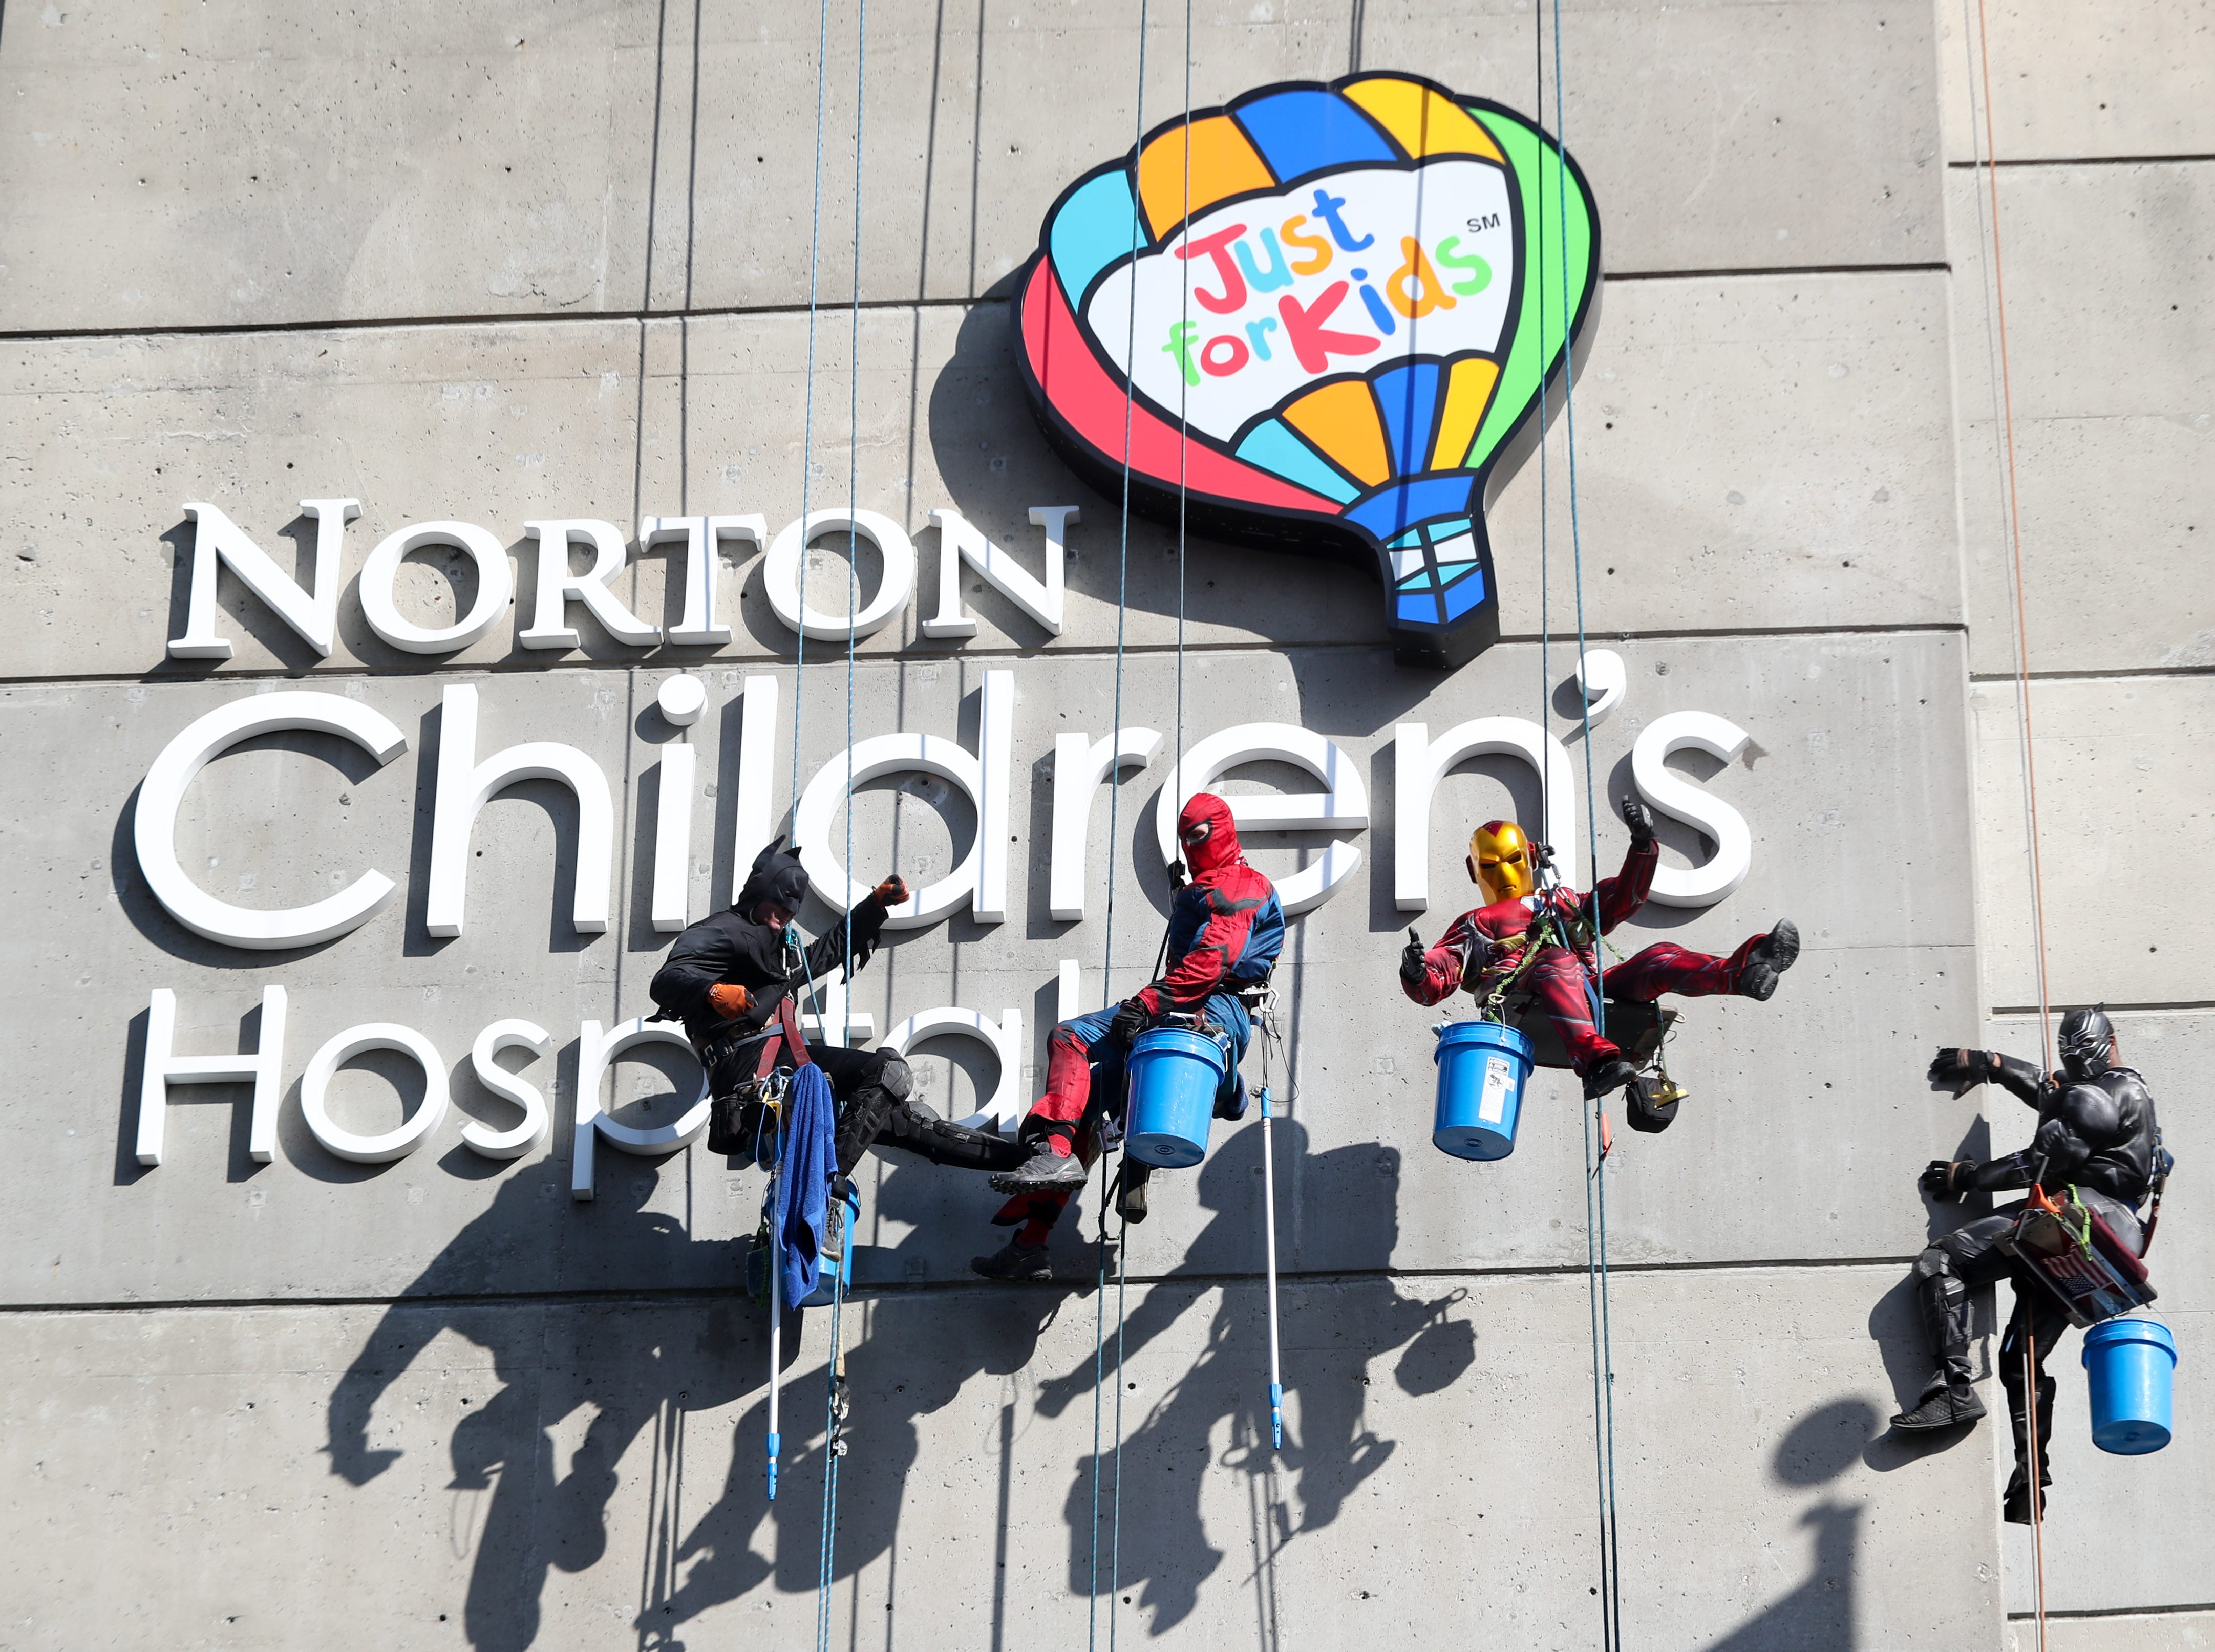 Pro Clean International cleans the windows at Norton Children's Hospital on Thursday morning dressed as Superheroes.  William Hart is dressed as Batman. Lonnie Hart is dressed up as Spider-Man. Joe Haist is dressed as Ironman and Lionel Bass is dressed as the Black Panther.  Feb. 21, 2019